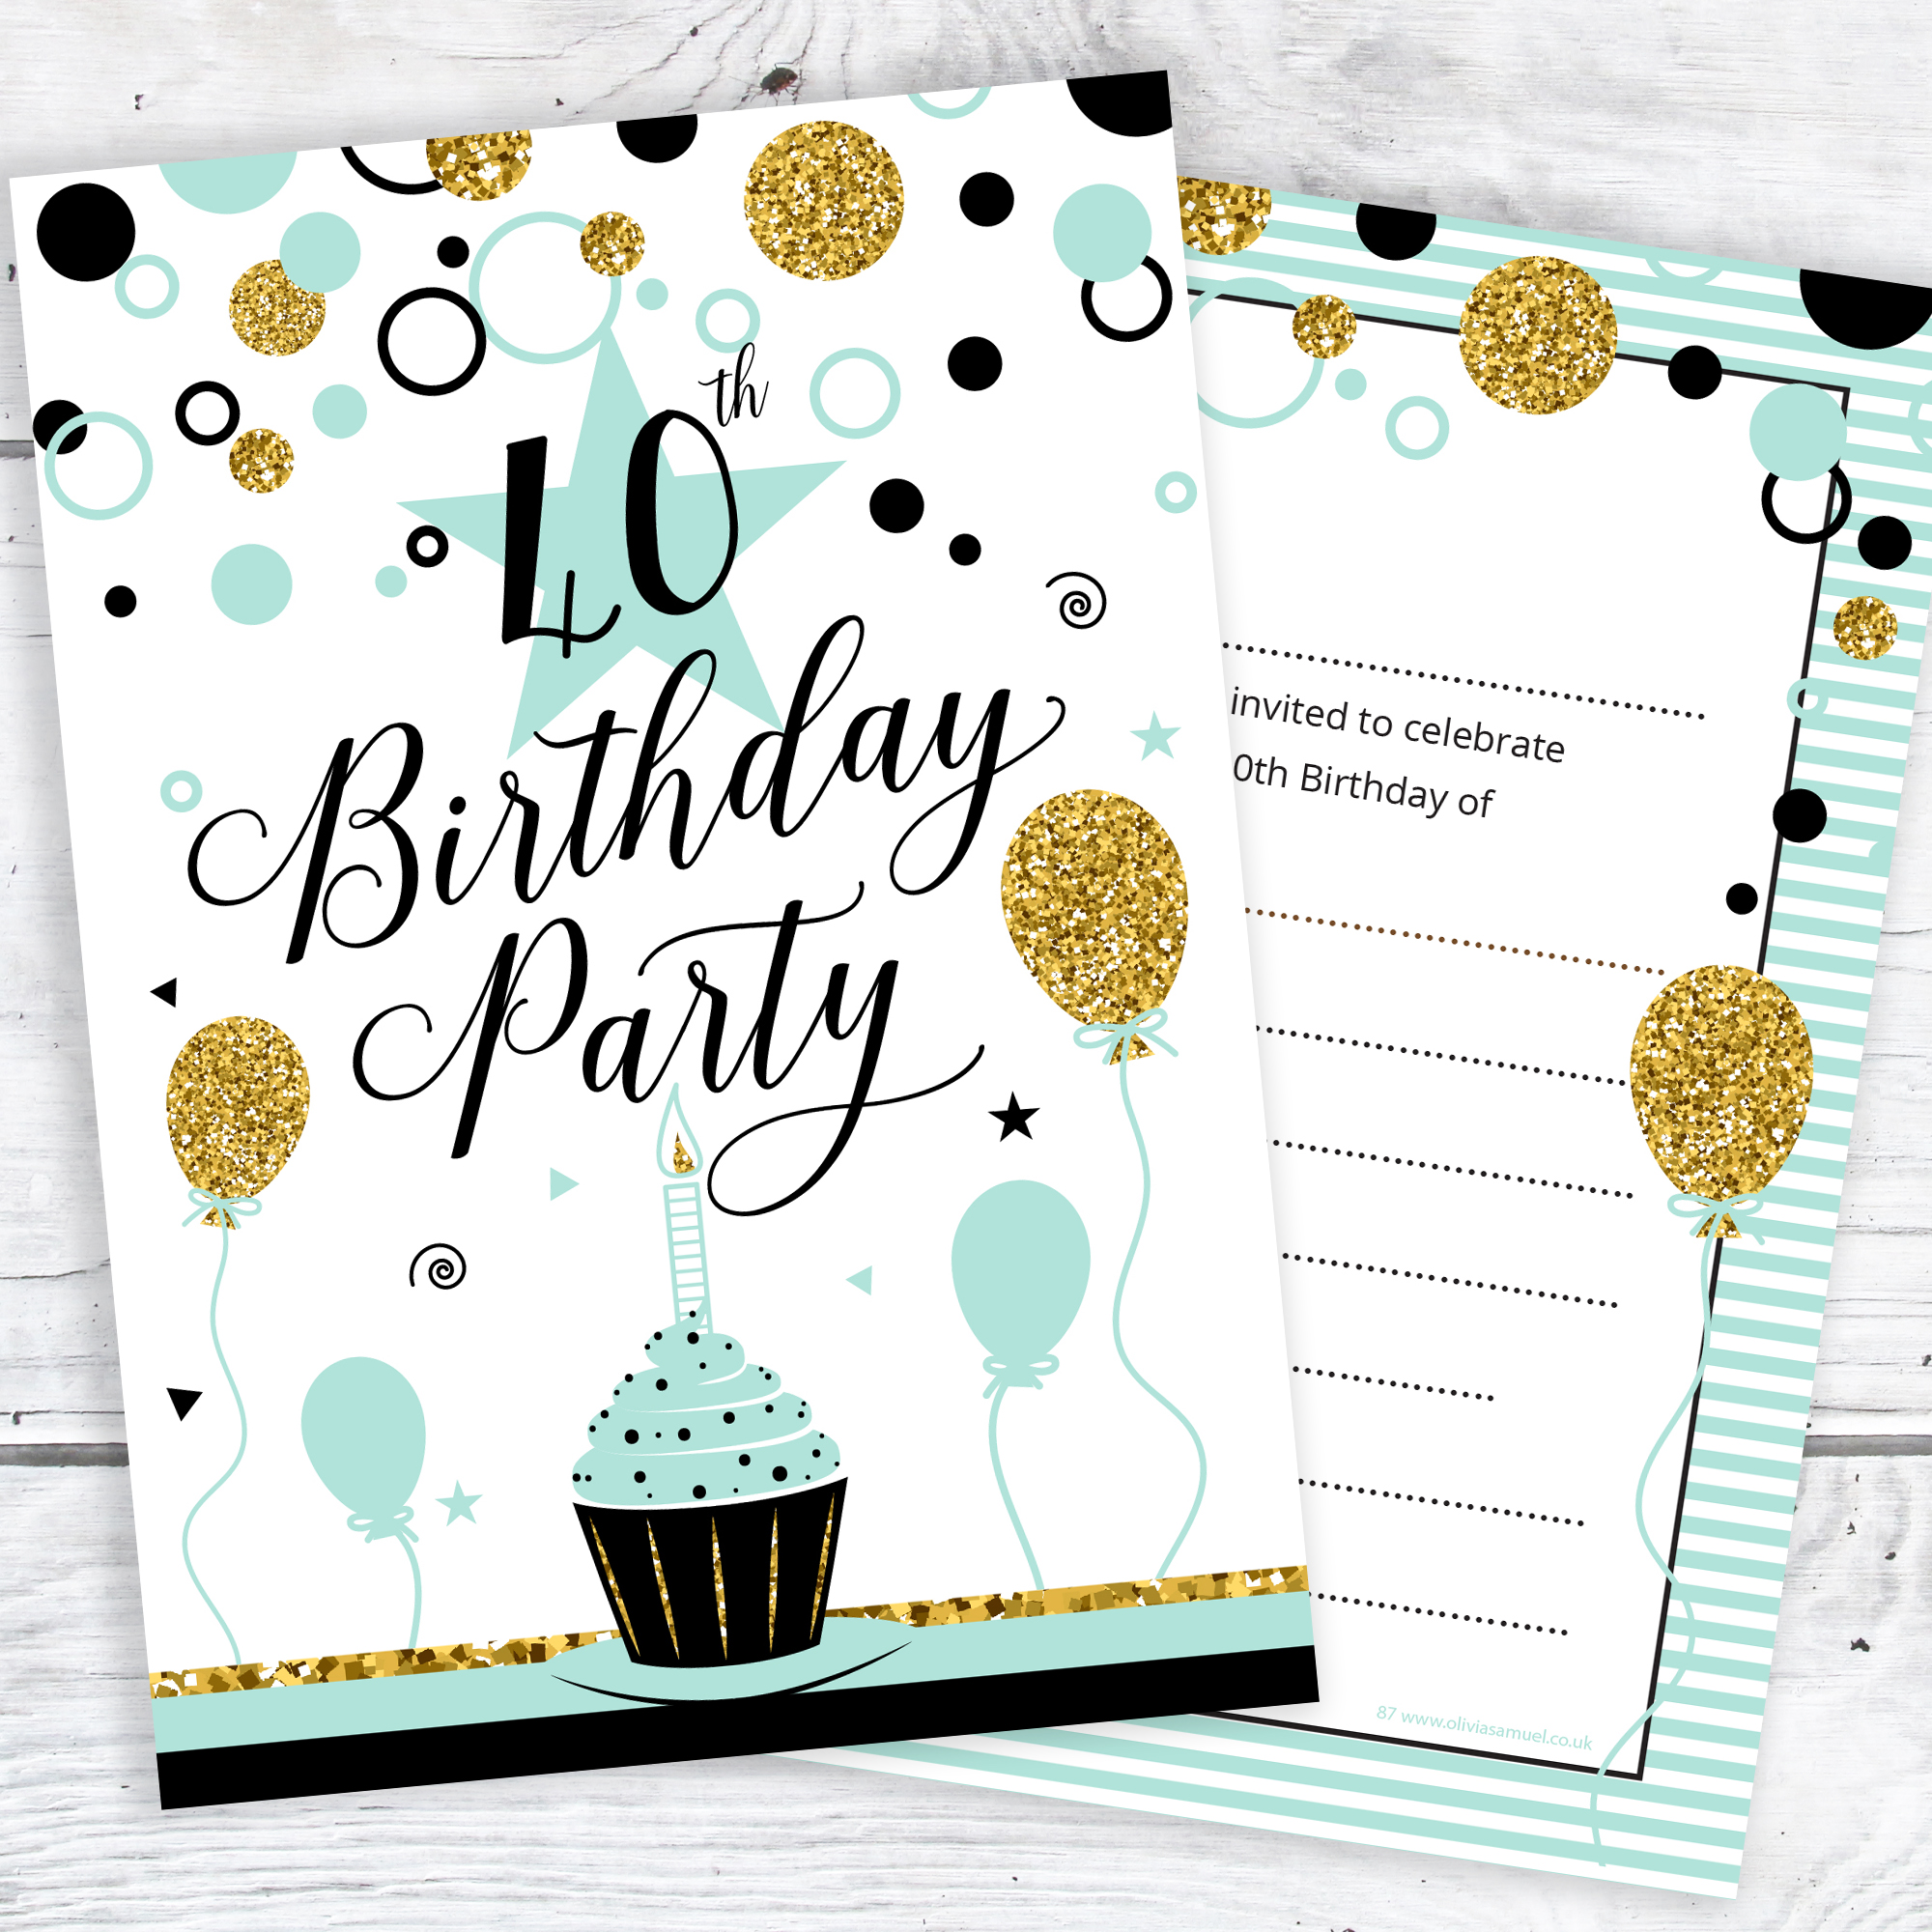 40th birthday party invitations chic design with faux glitter 40th birthday invitations ready to write filmwisefo